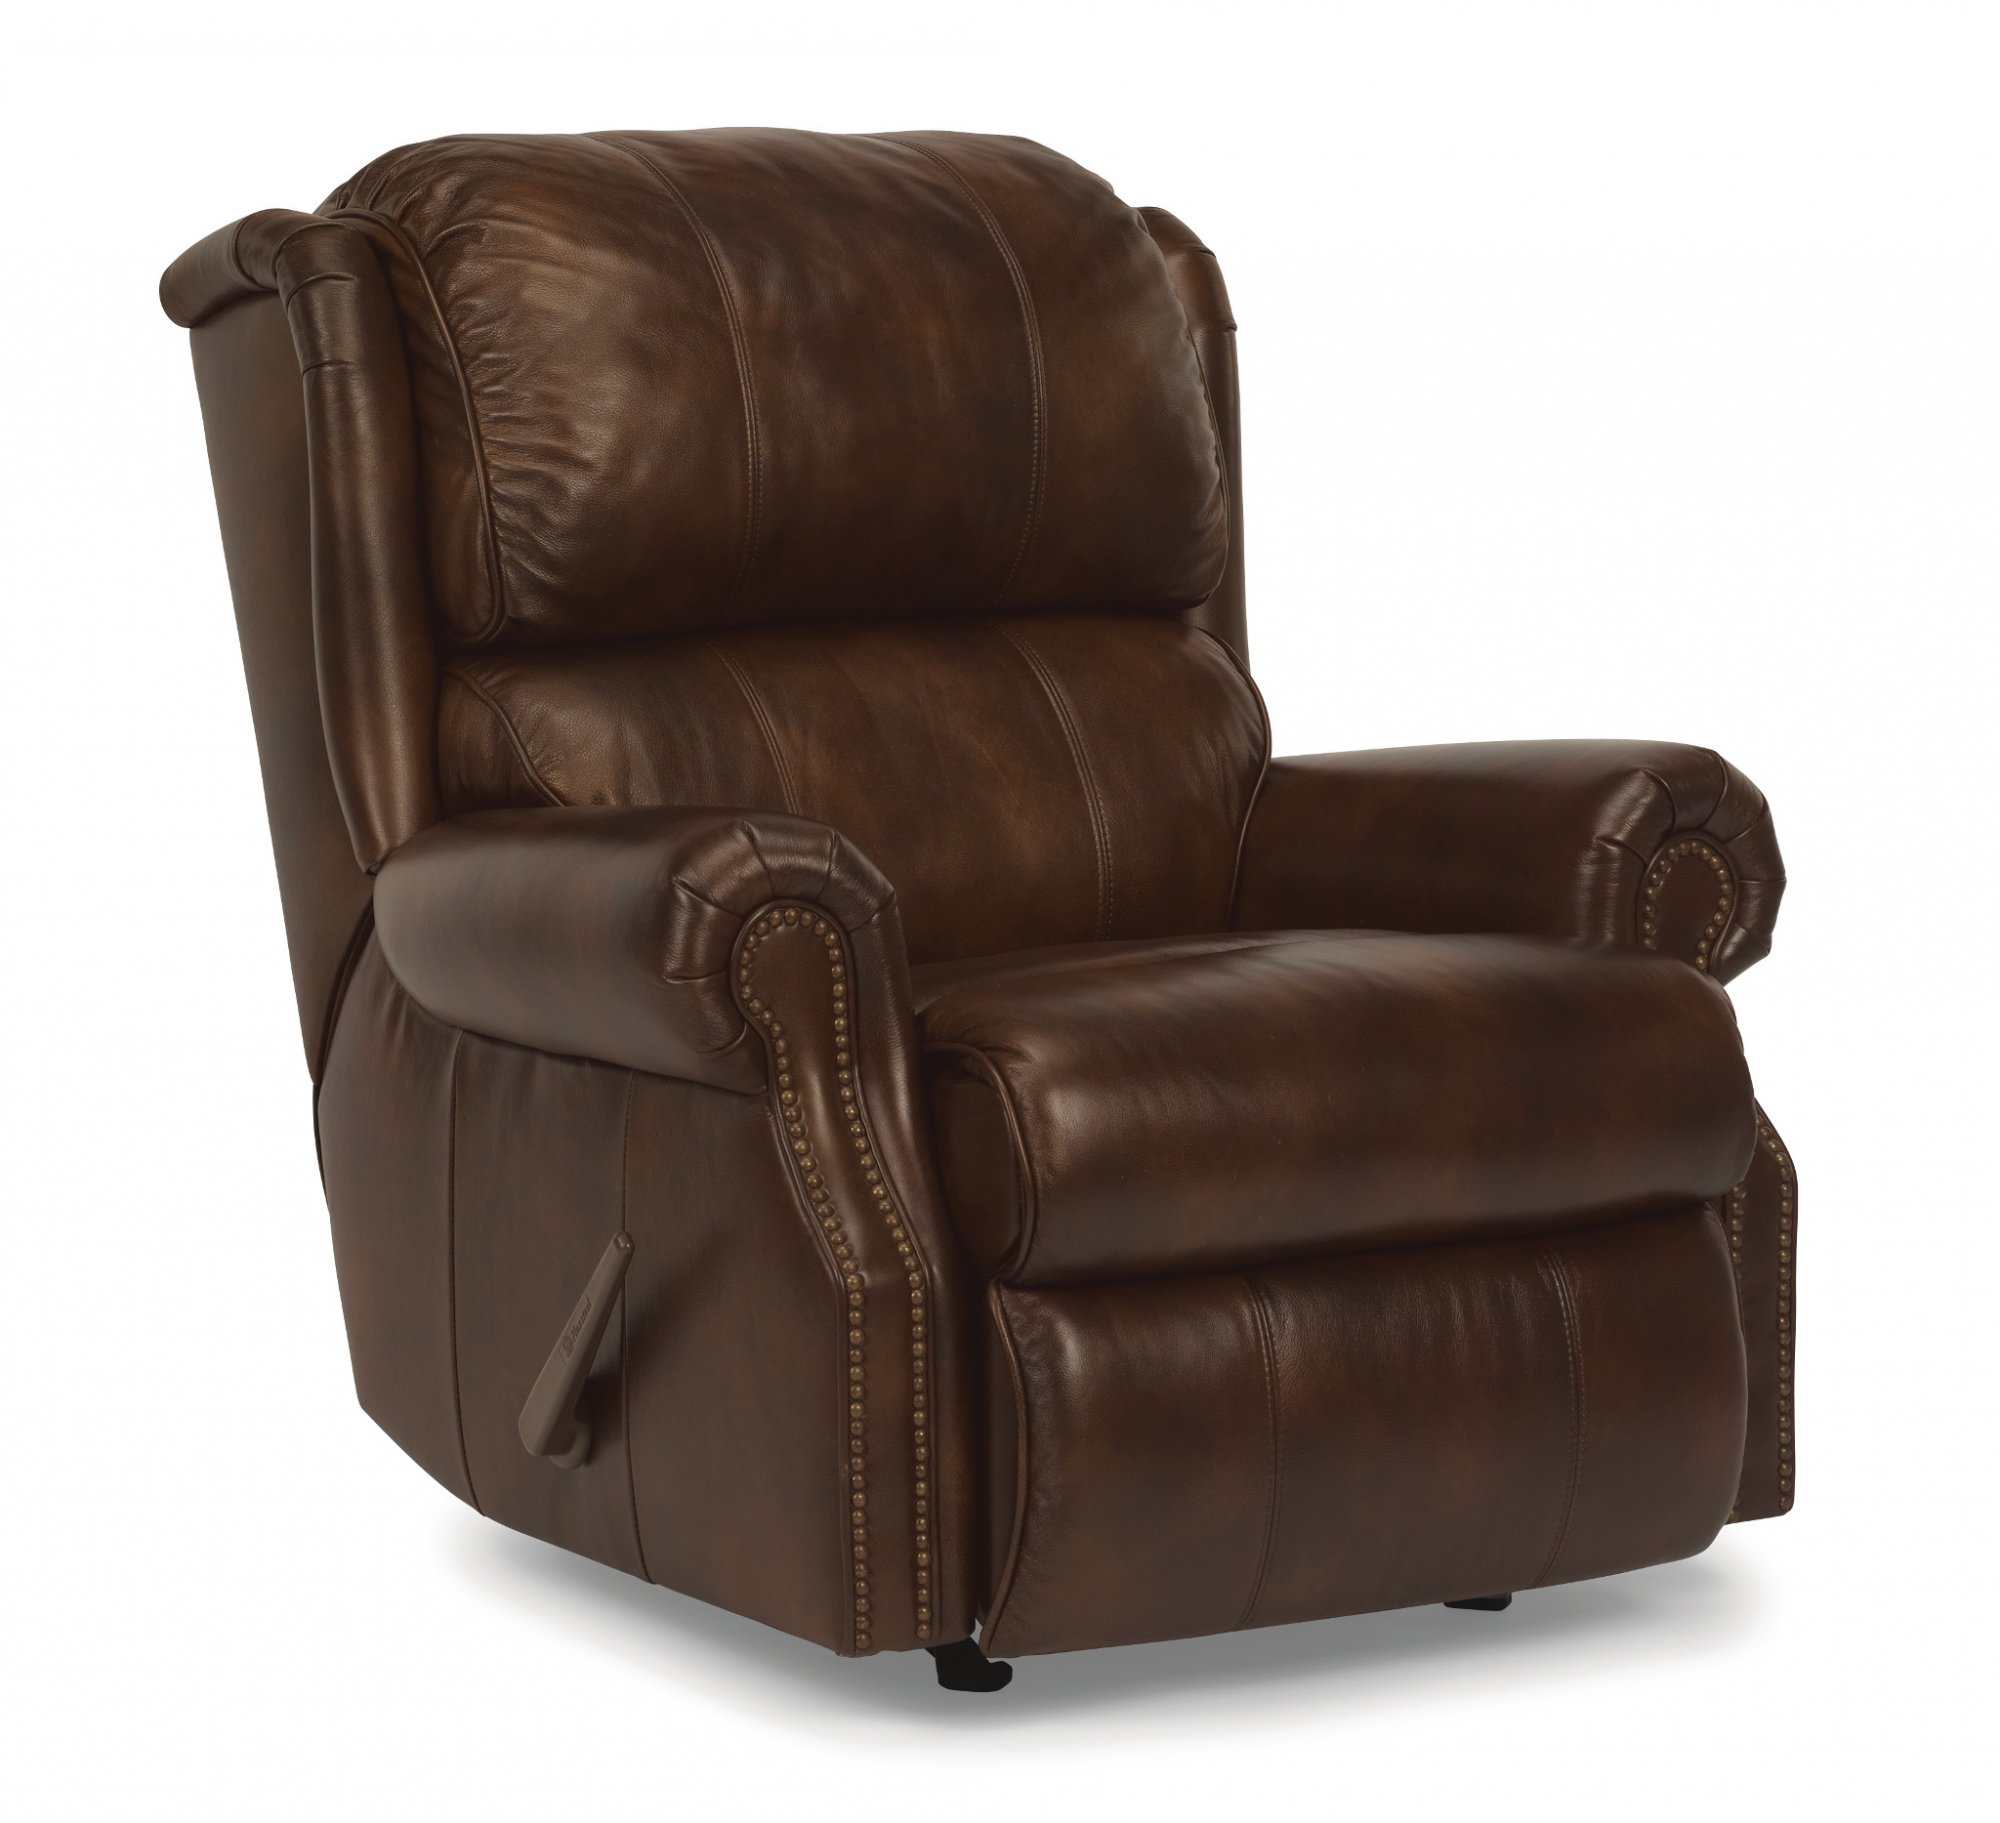 Comfort Zone Extra Padded Leather Rocking Recliner